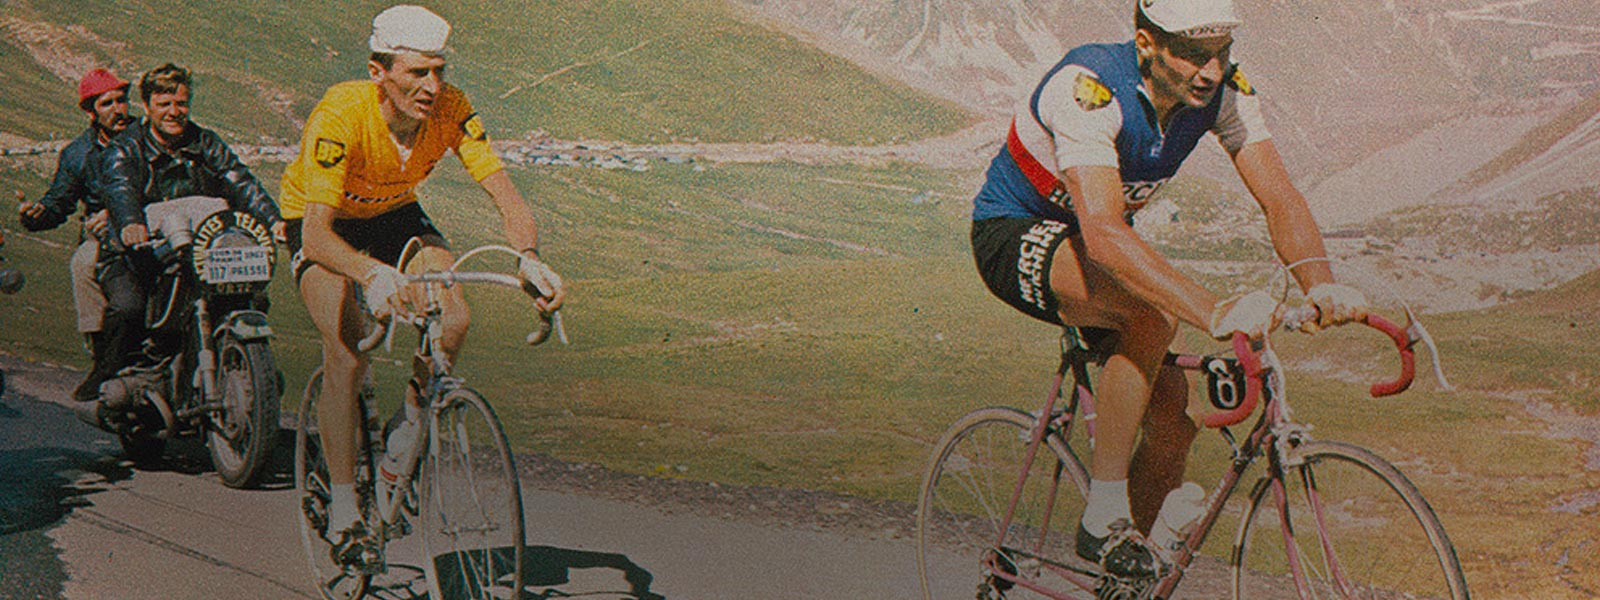 10 Tour De France Facts to impress your work colleagues